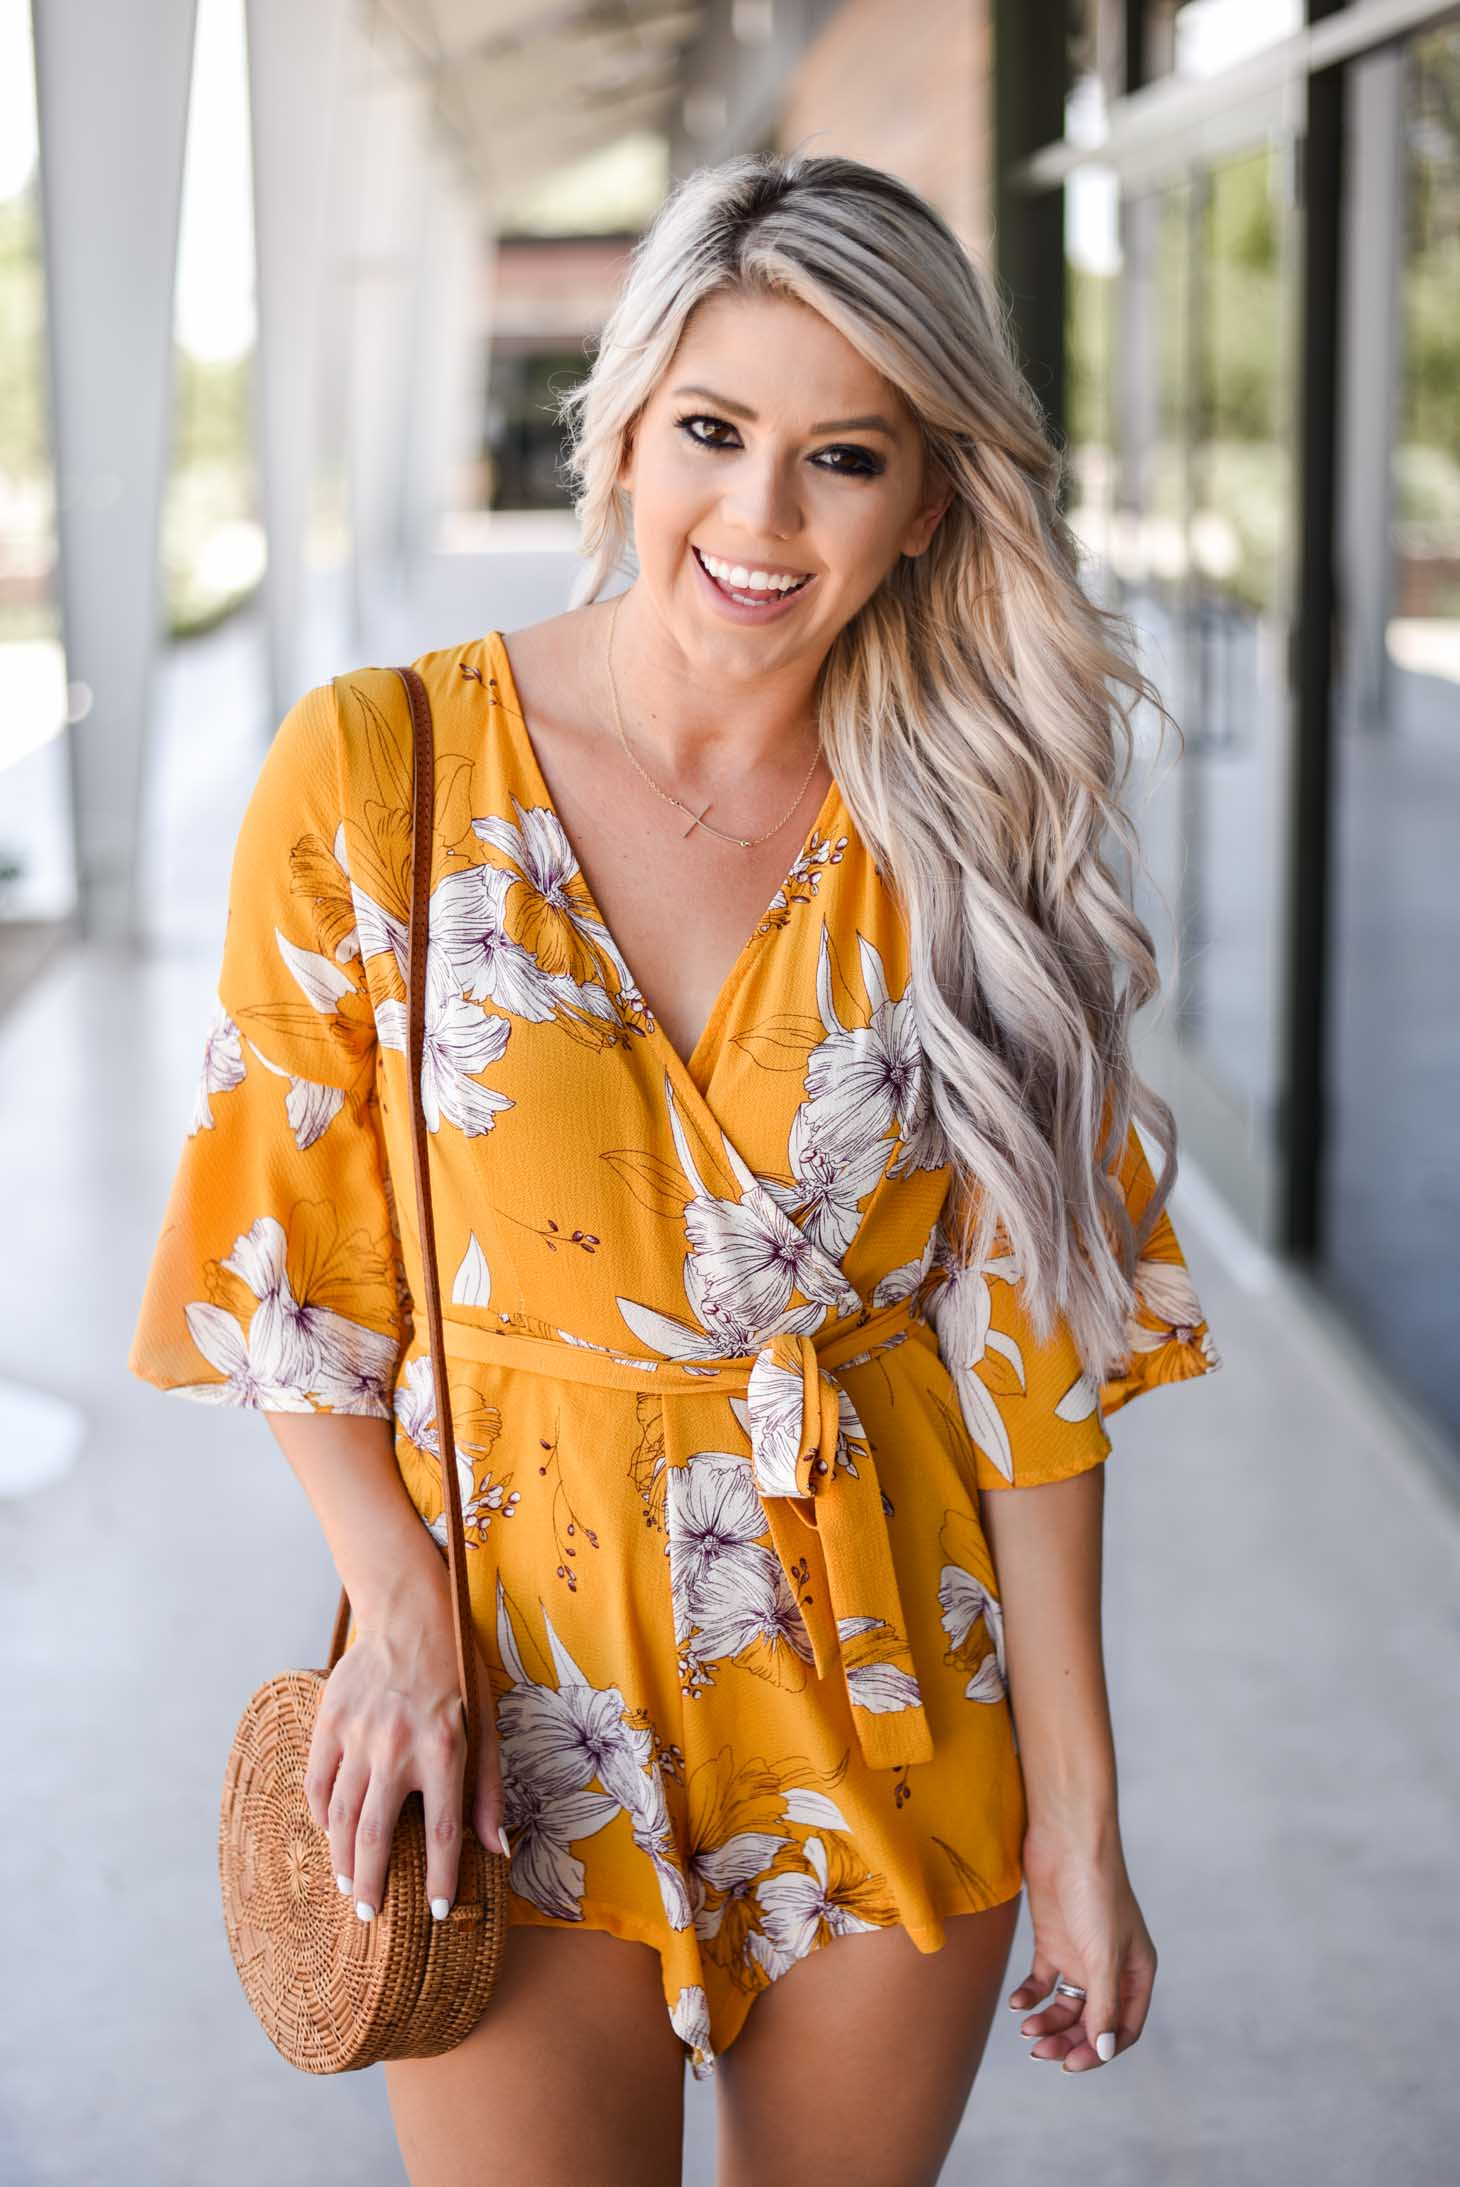 Erin Elizabeth of Wink and a Twirl shares this cute yellow romper from Chicwish perfect for Summer and Fall style